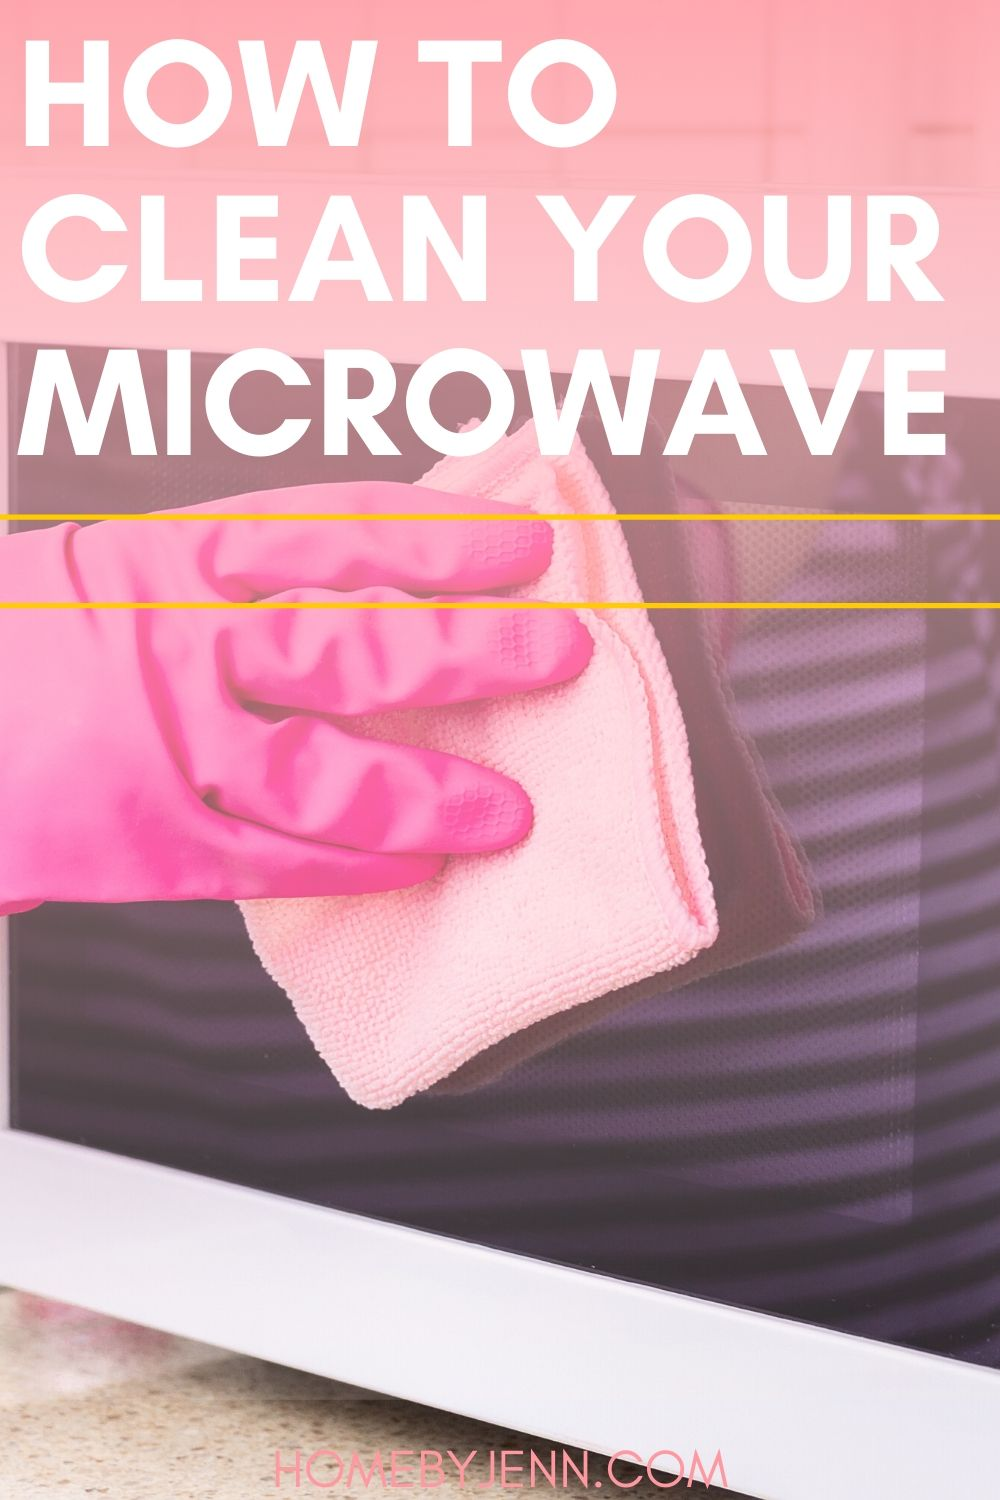 Get these simple cleaning so you can learn how to clean your microwave. #cleaning #howtocleanamicrowave #cleaningtips #cleaningtipsandtricks #cleaninghacks #kitchen #microwave via @homebyjenn